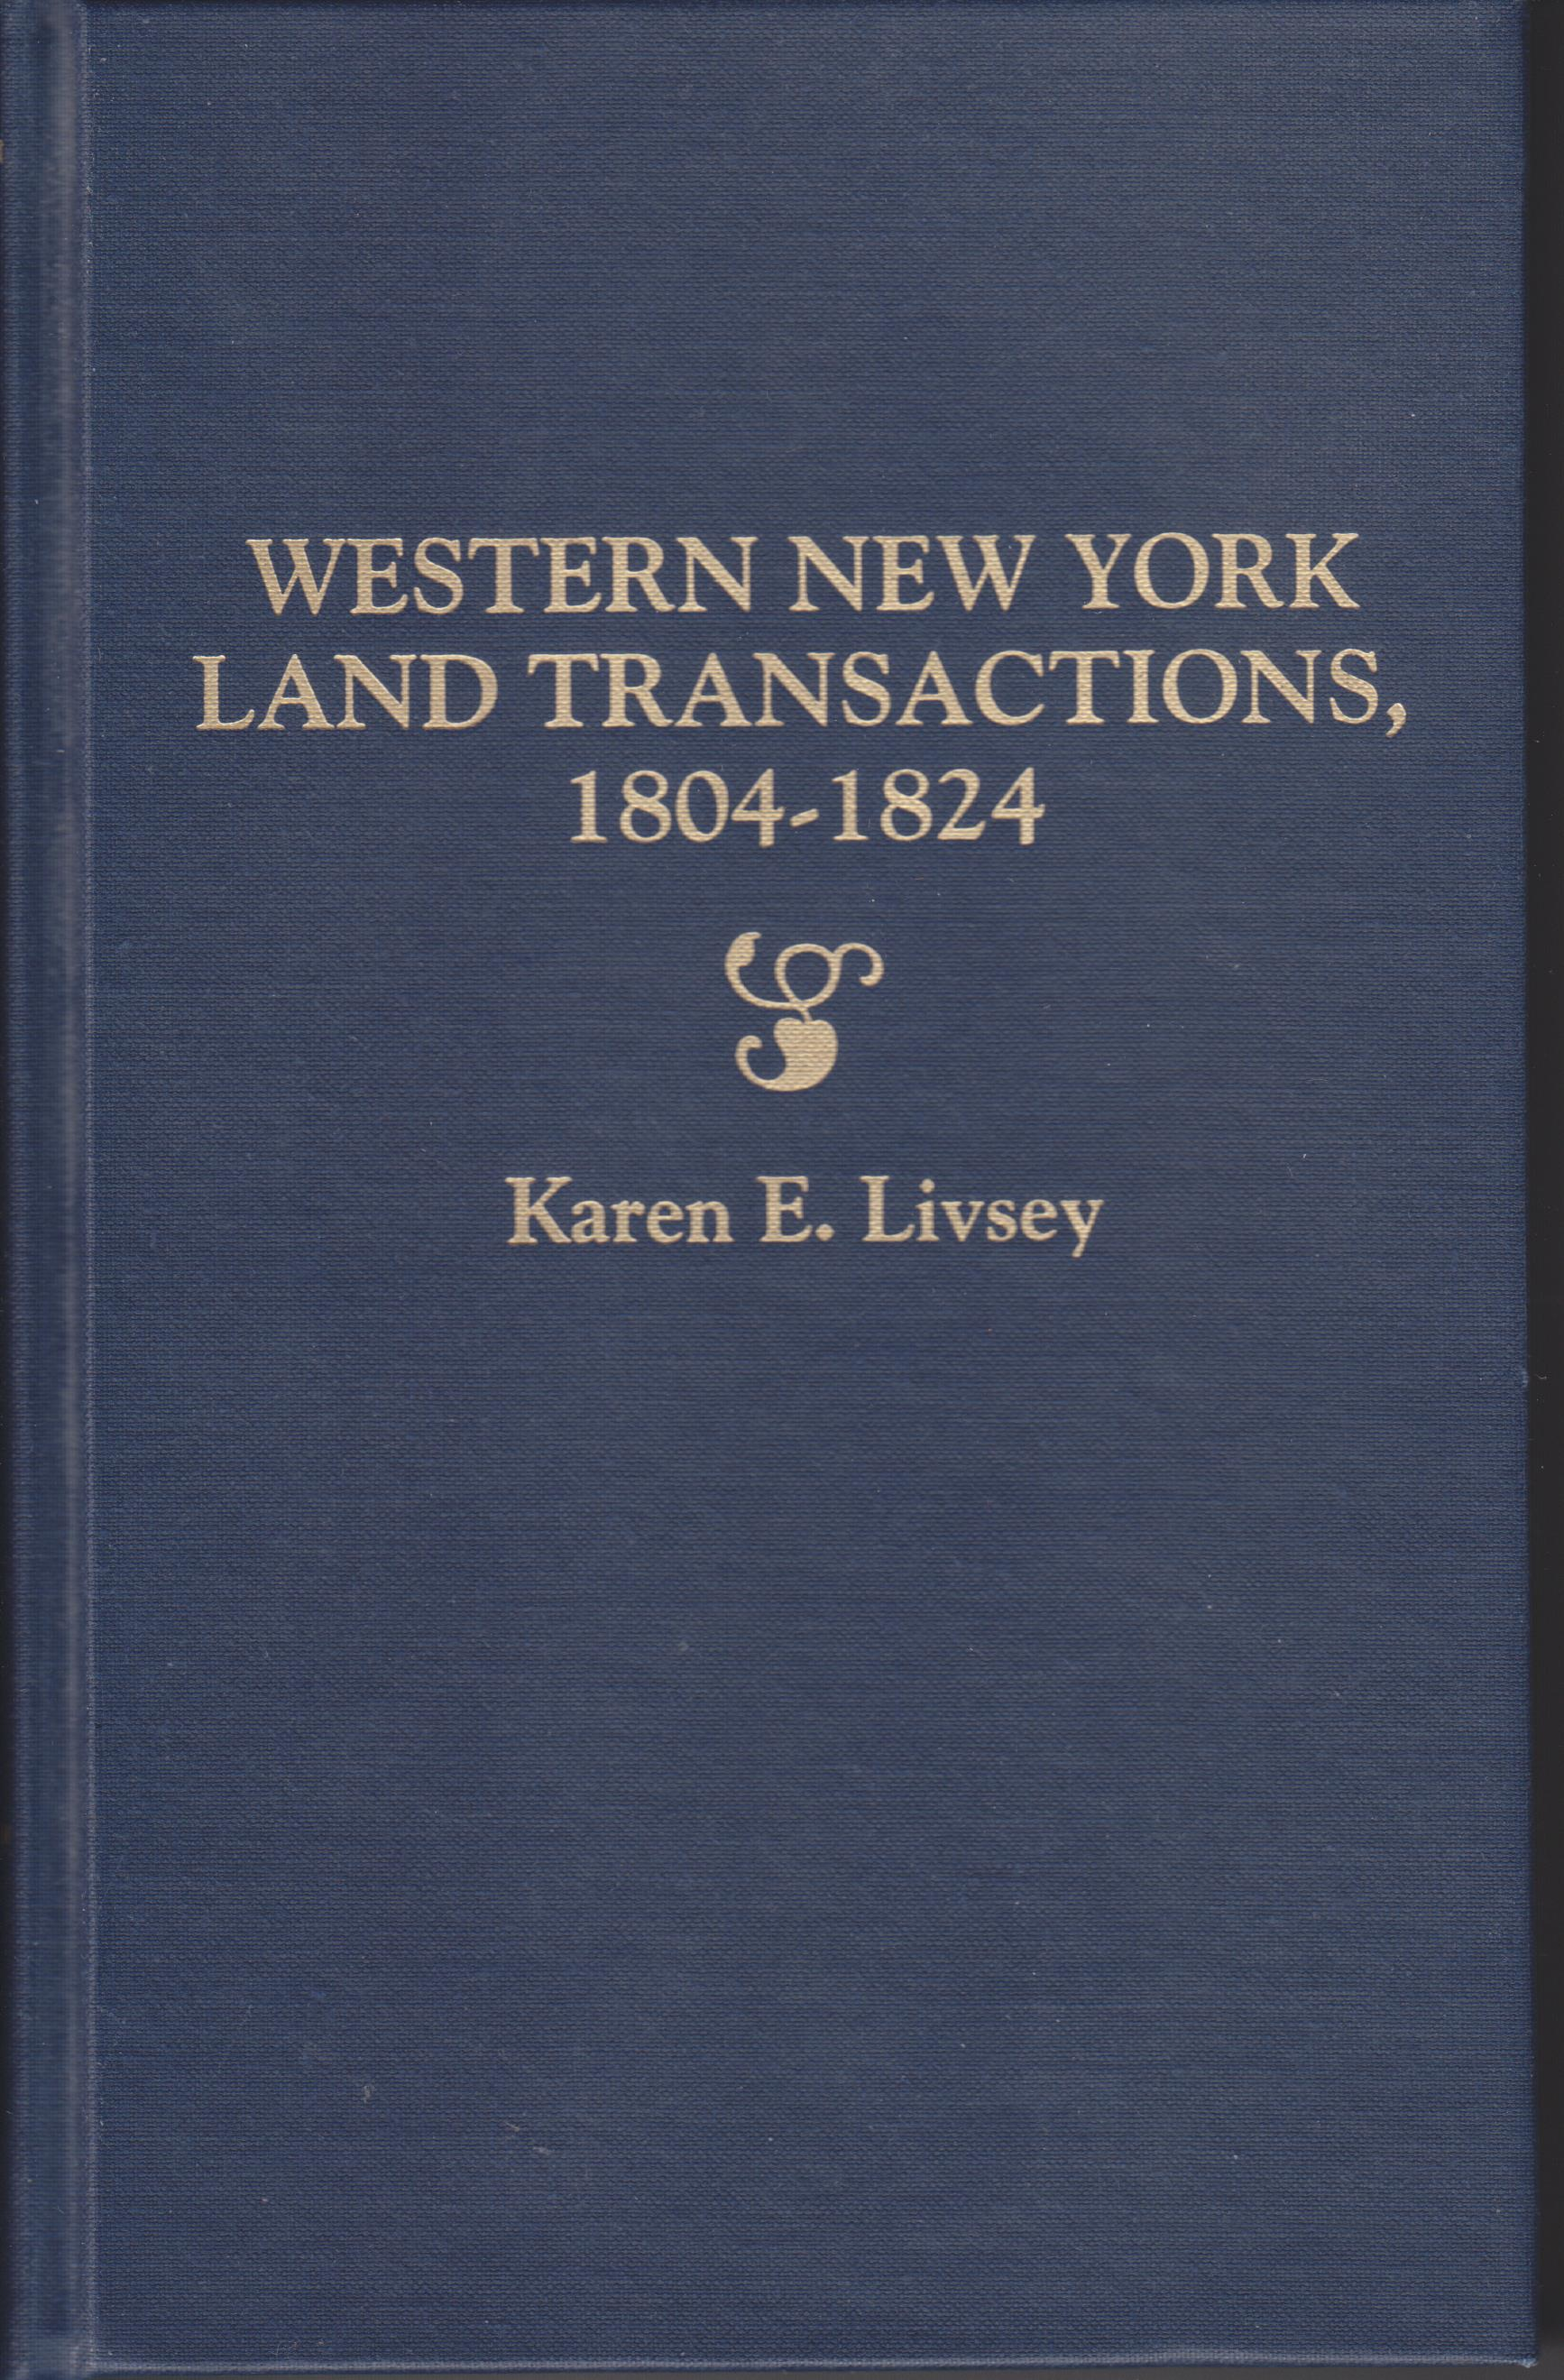 Image for Western New York Land Transactions 1804 - 1824